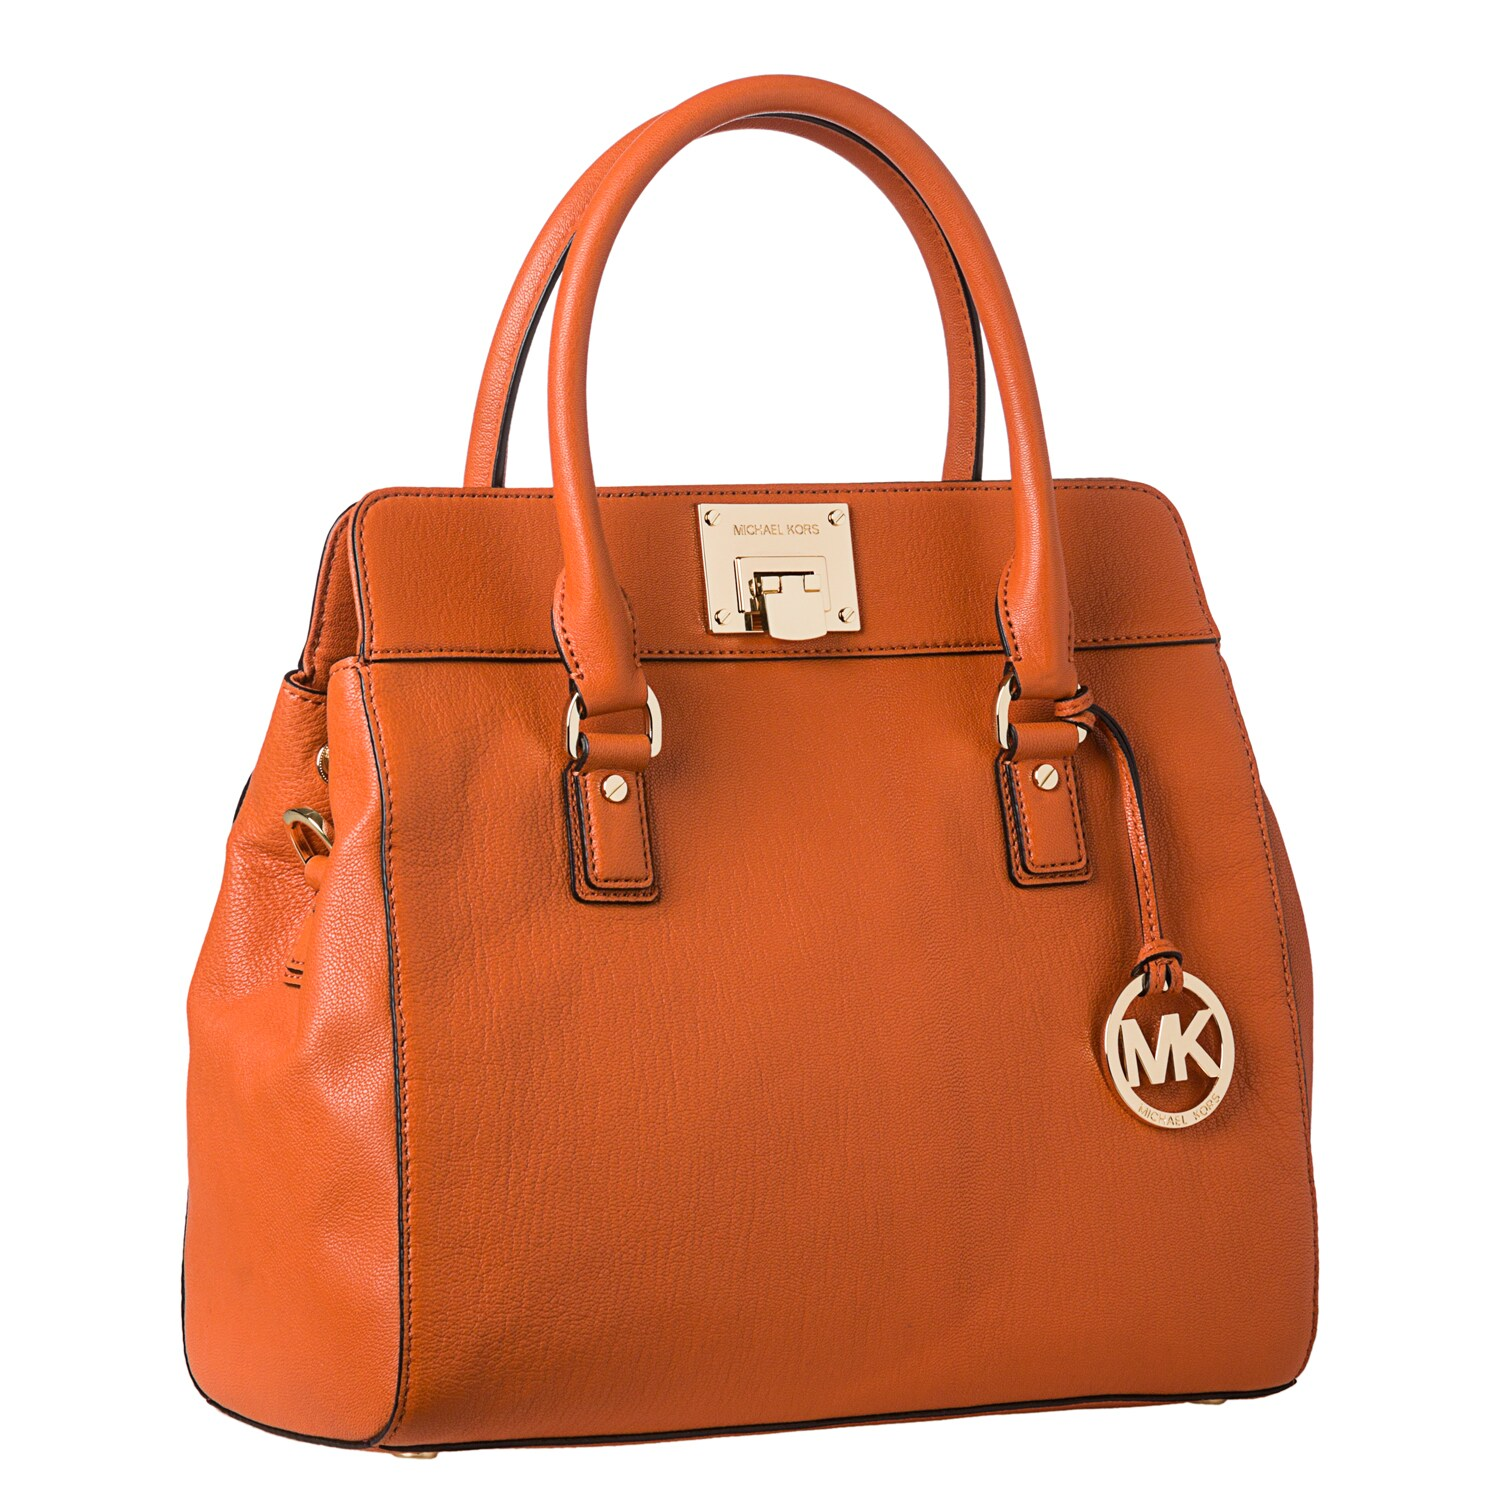 753e3700a536 Shop MICHAEL Michael Kors 'Astrid' Large Satchel - Free Shipping Today -  Overstock - 8028403